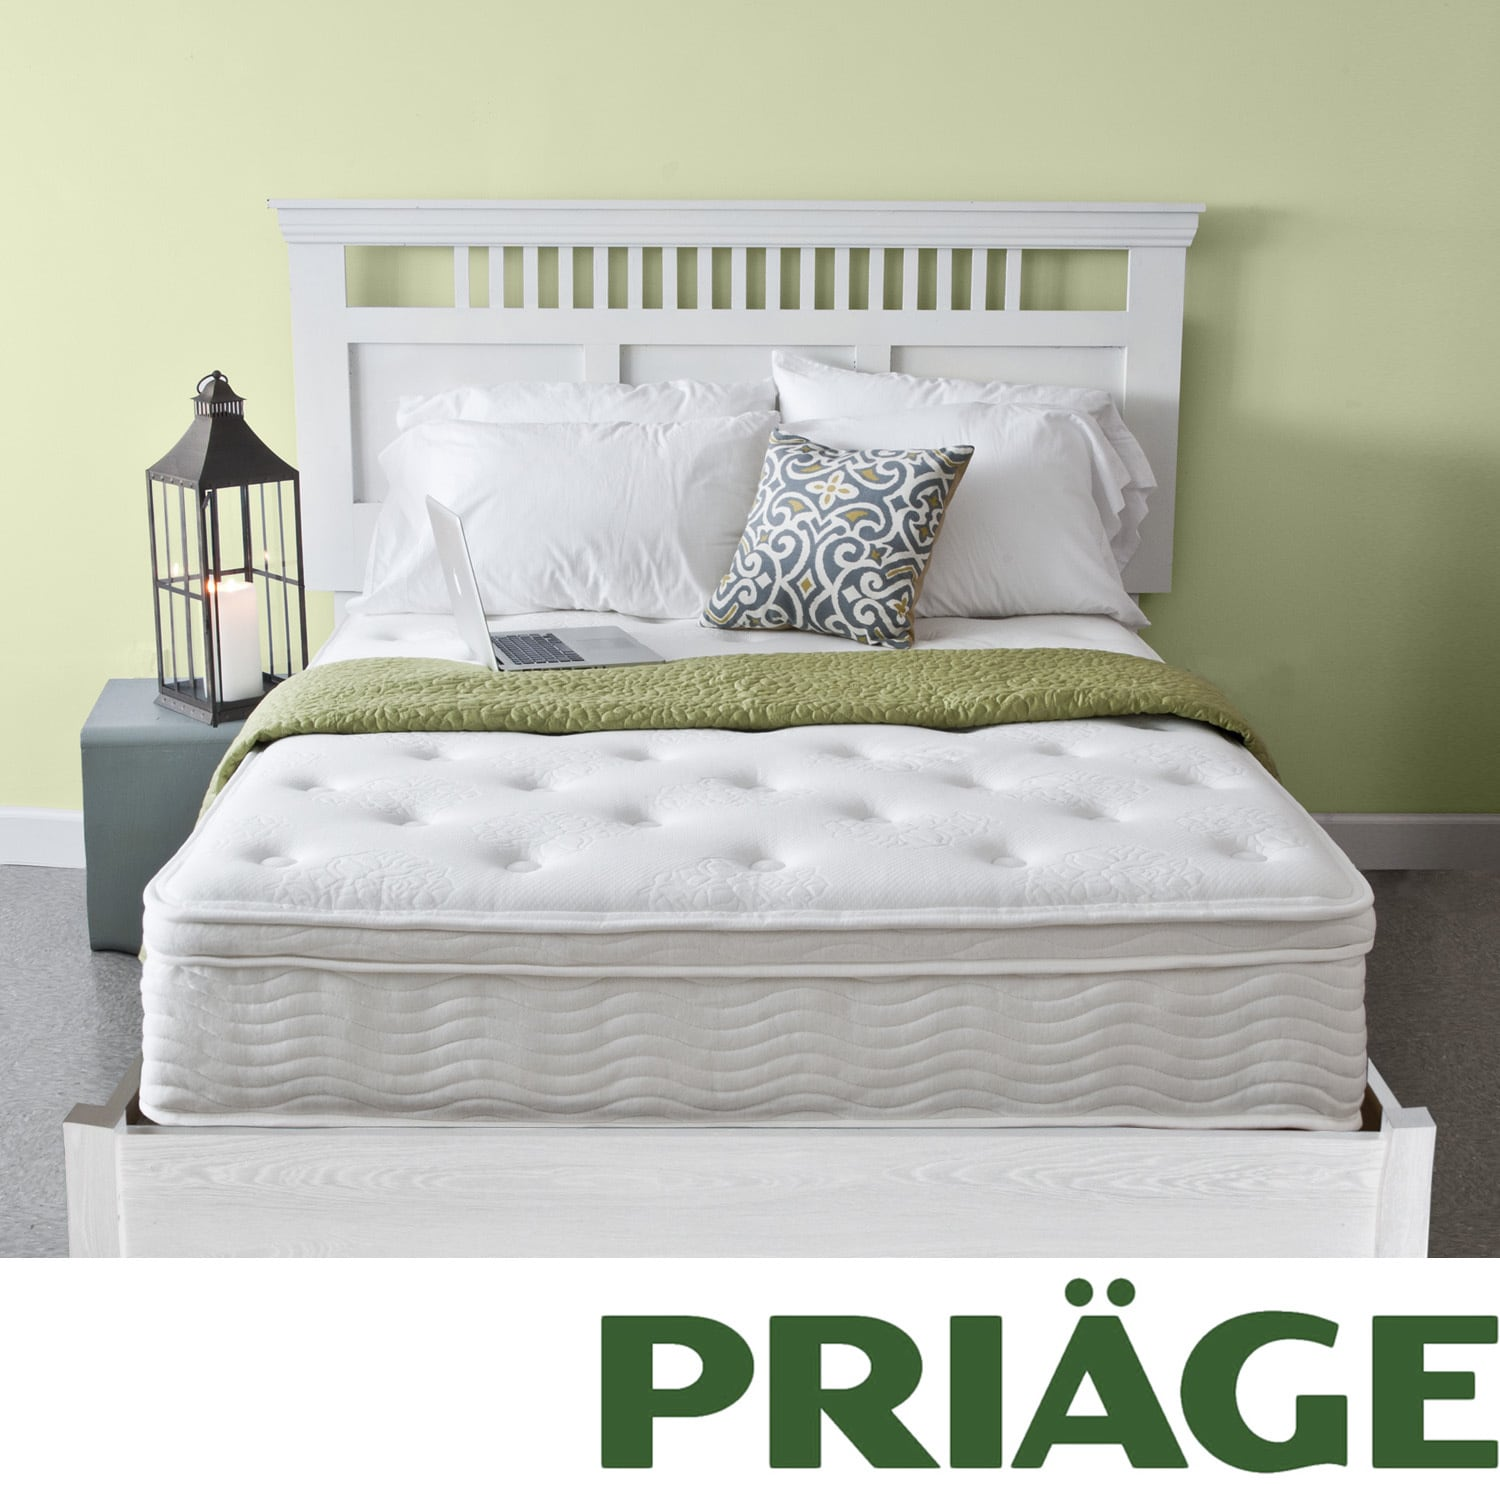 Priage Euro Box Top 12-inch Twin-size iCoil Spring Mattress at Sears.com